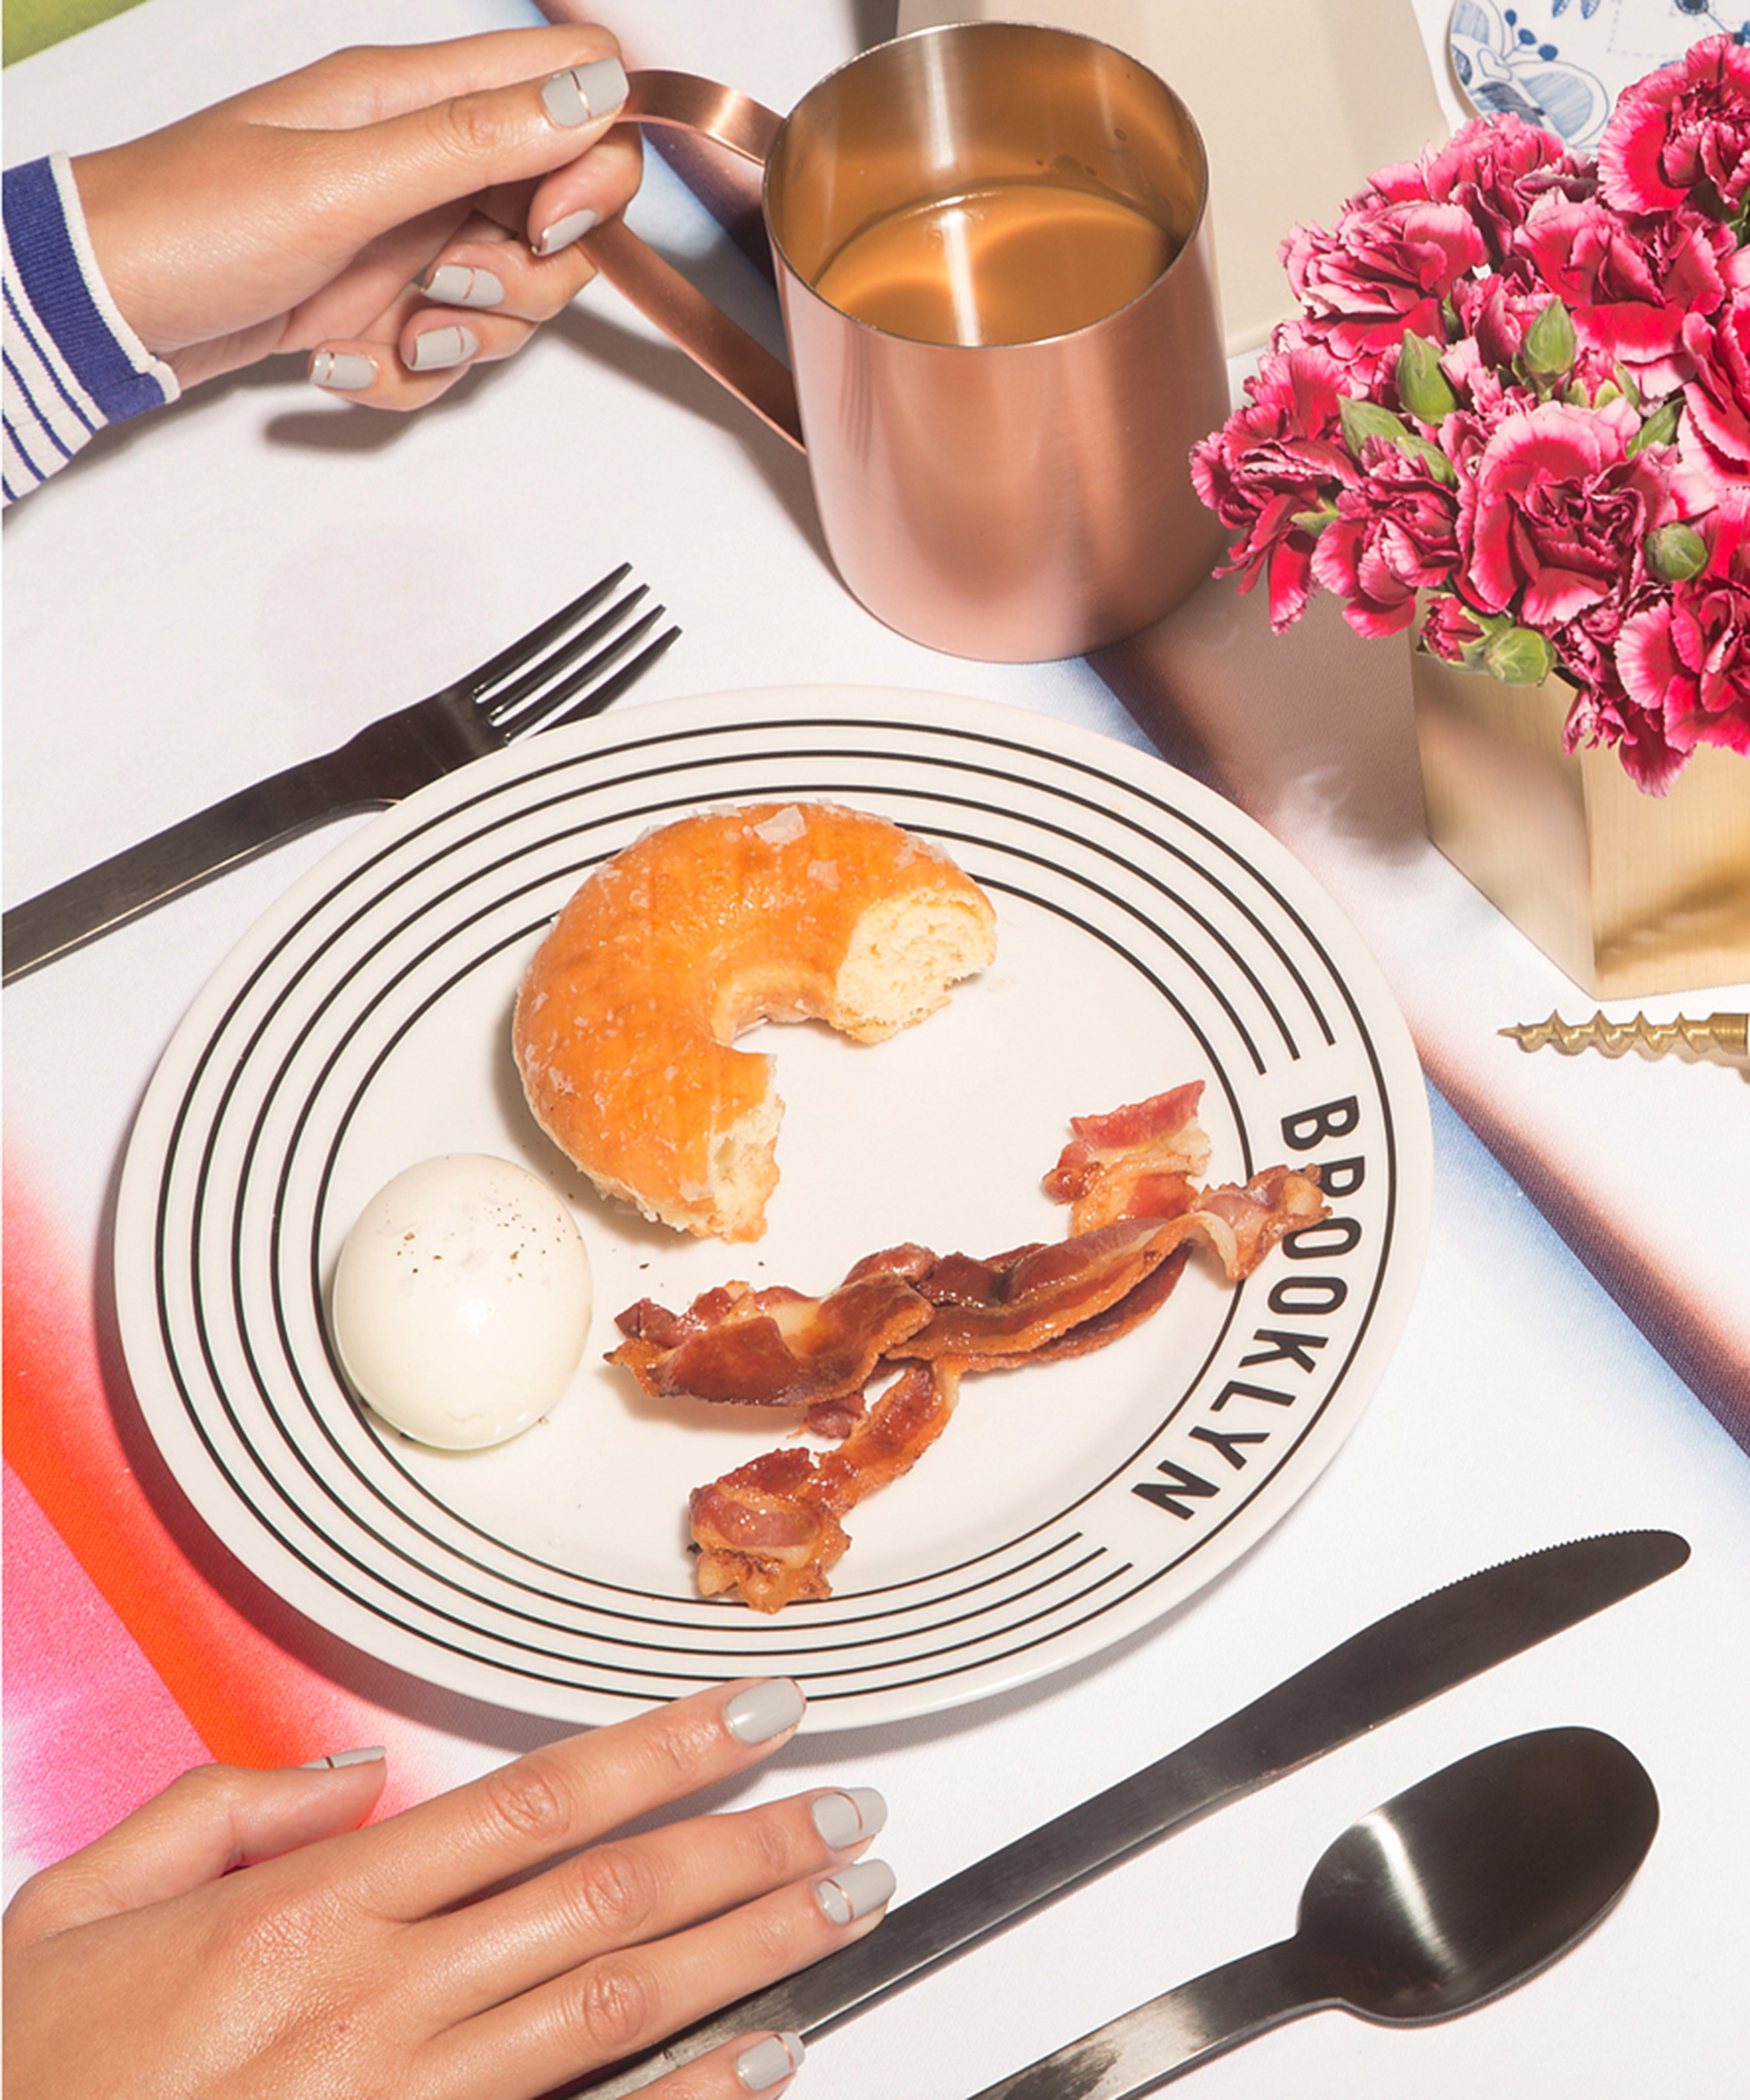 Mothers Day Brunch Restaurants In NYC With Reservations